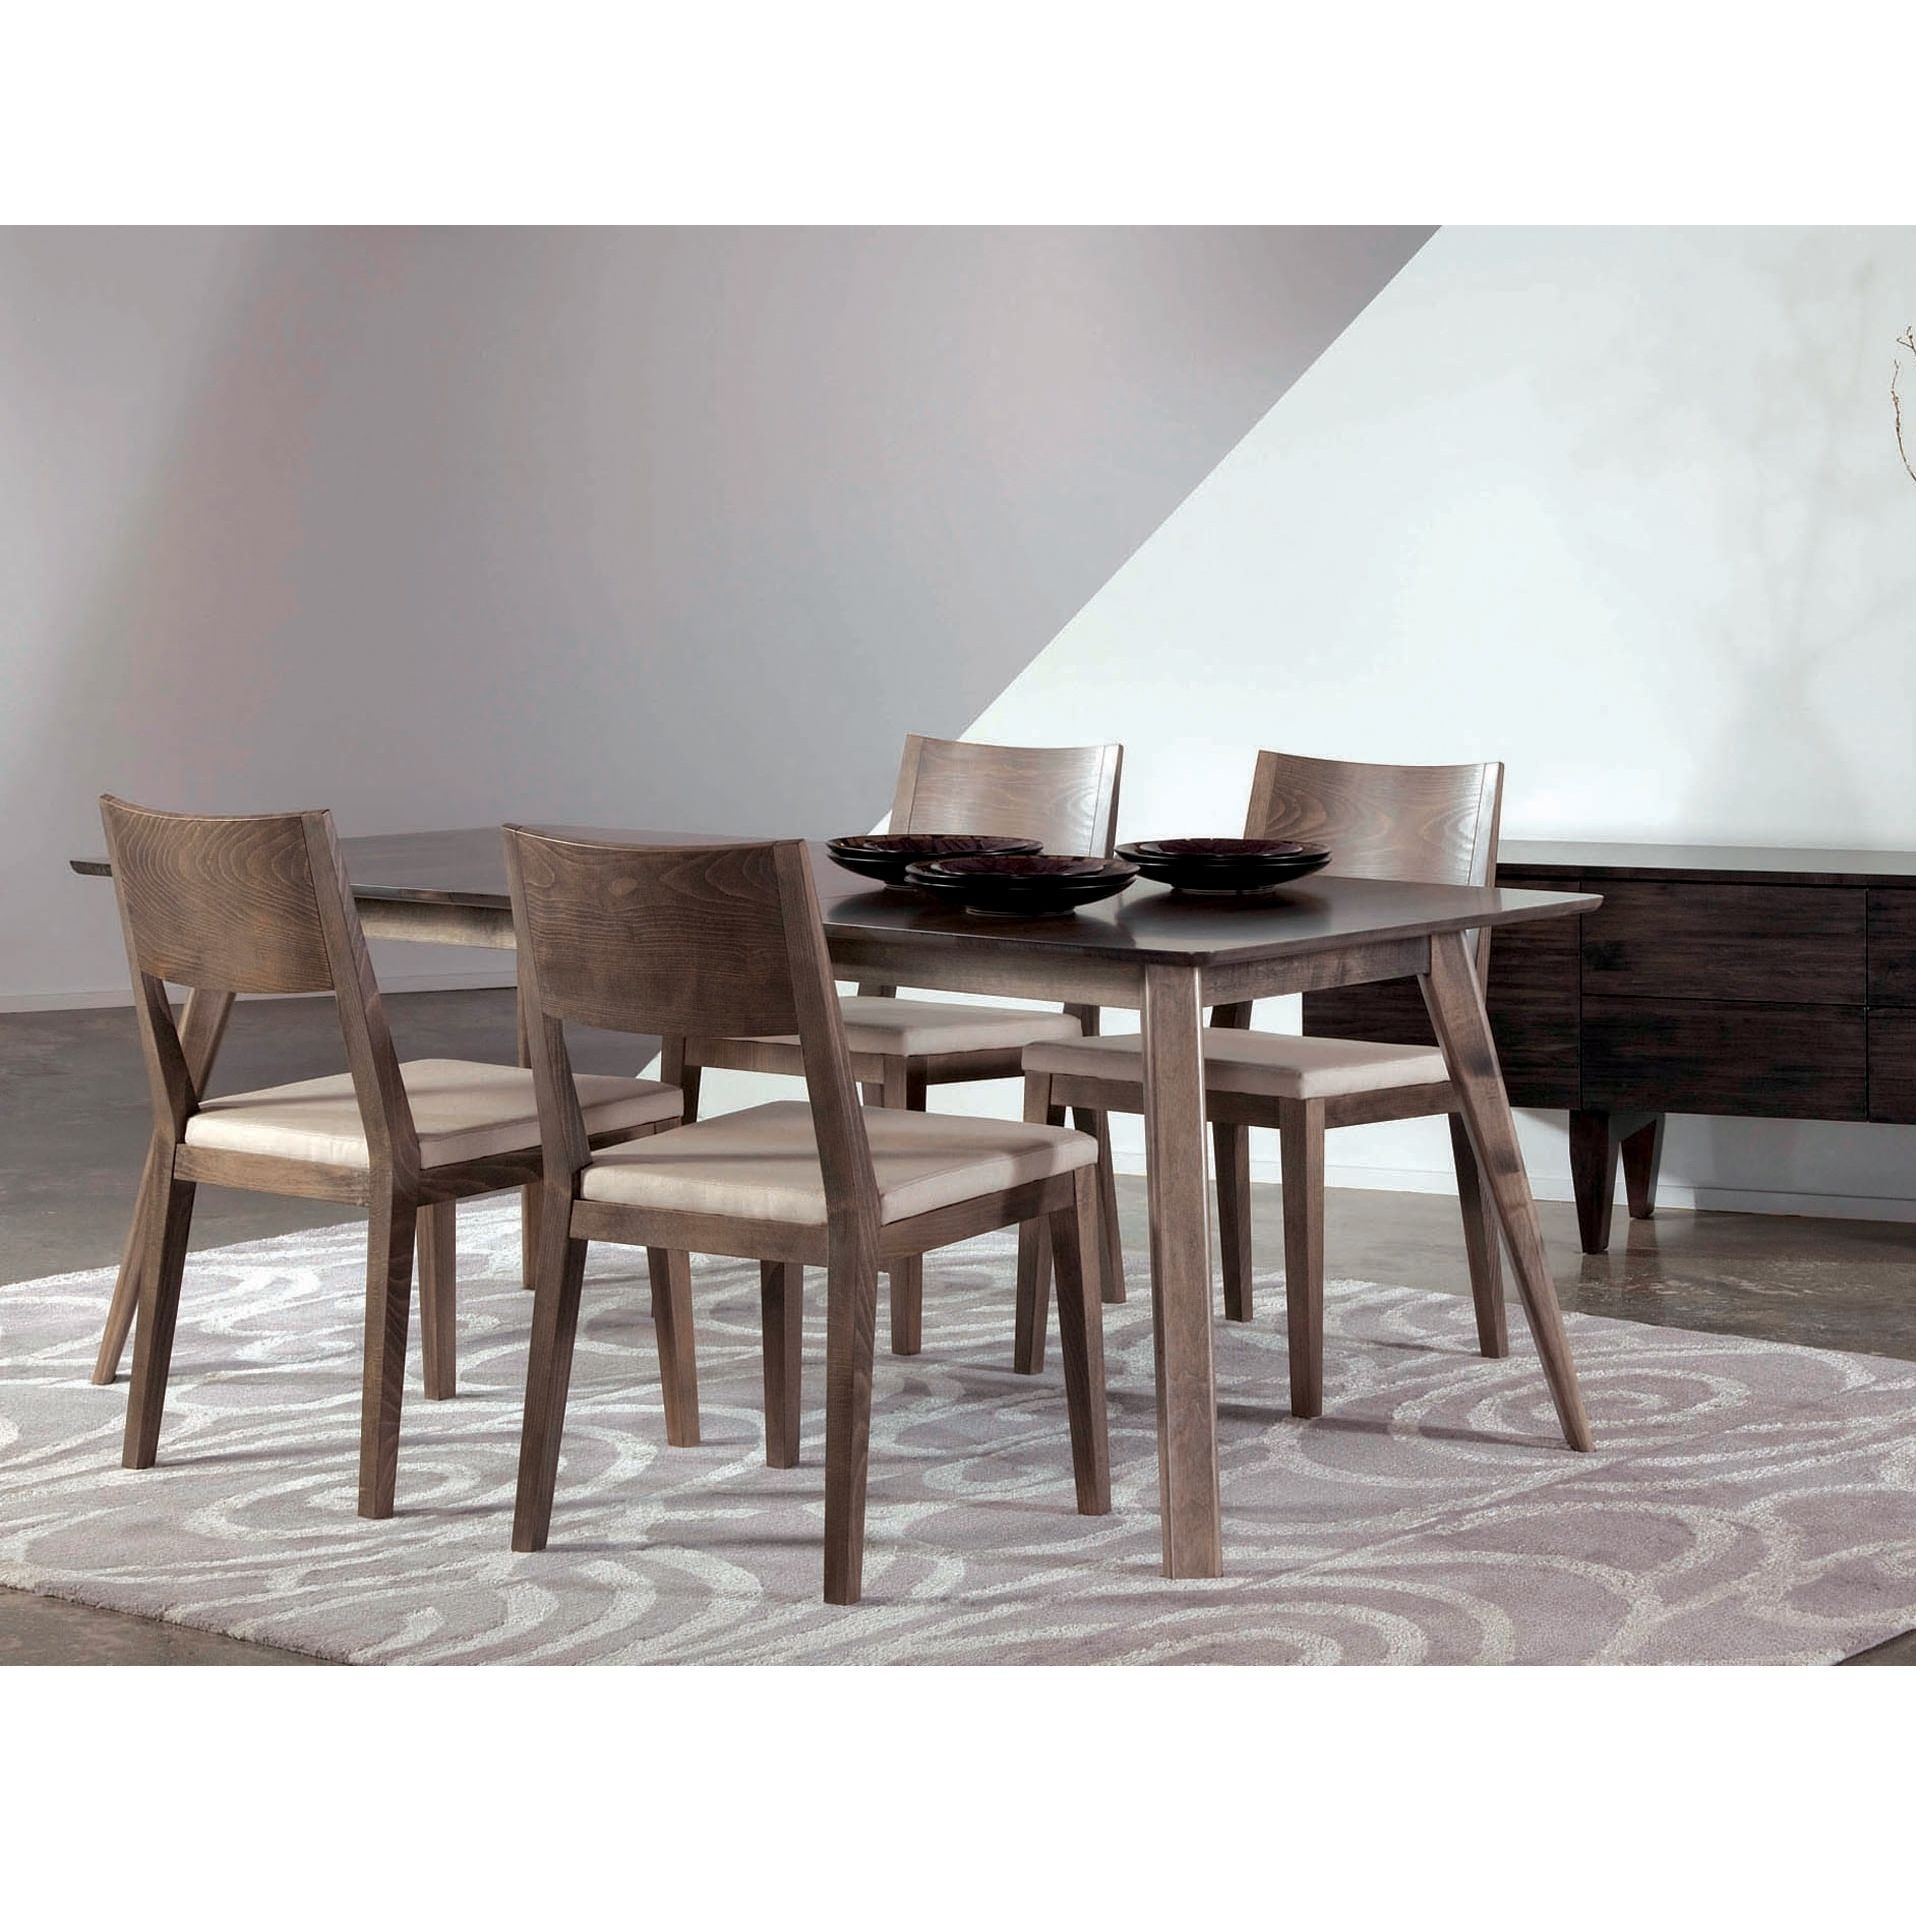 Overstock Com Online Shopping Bedding Furniture Electronics Jewelry Clothing More Dining Room Table Solid Wood Dining Table Dining Set